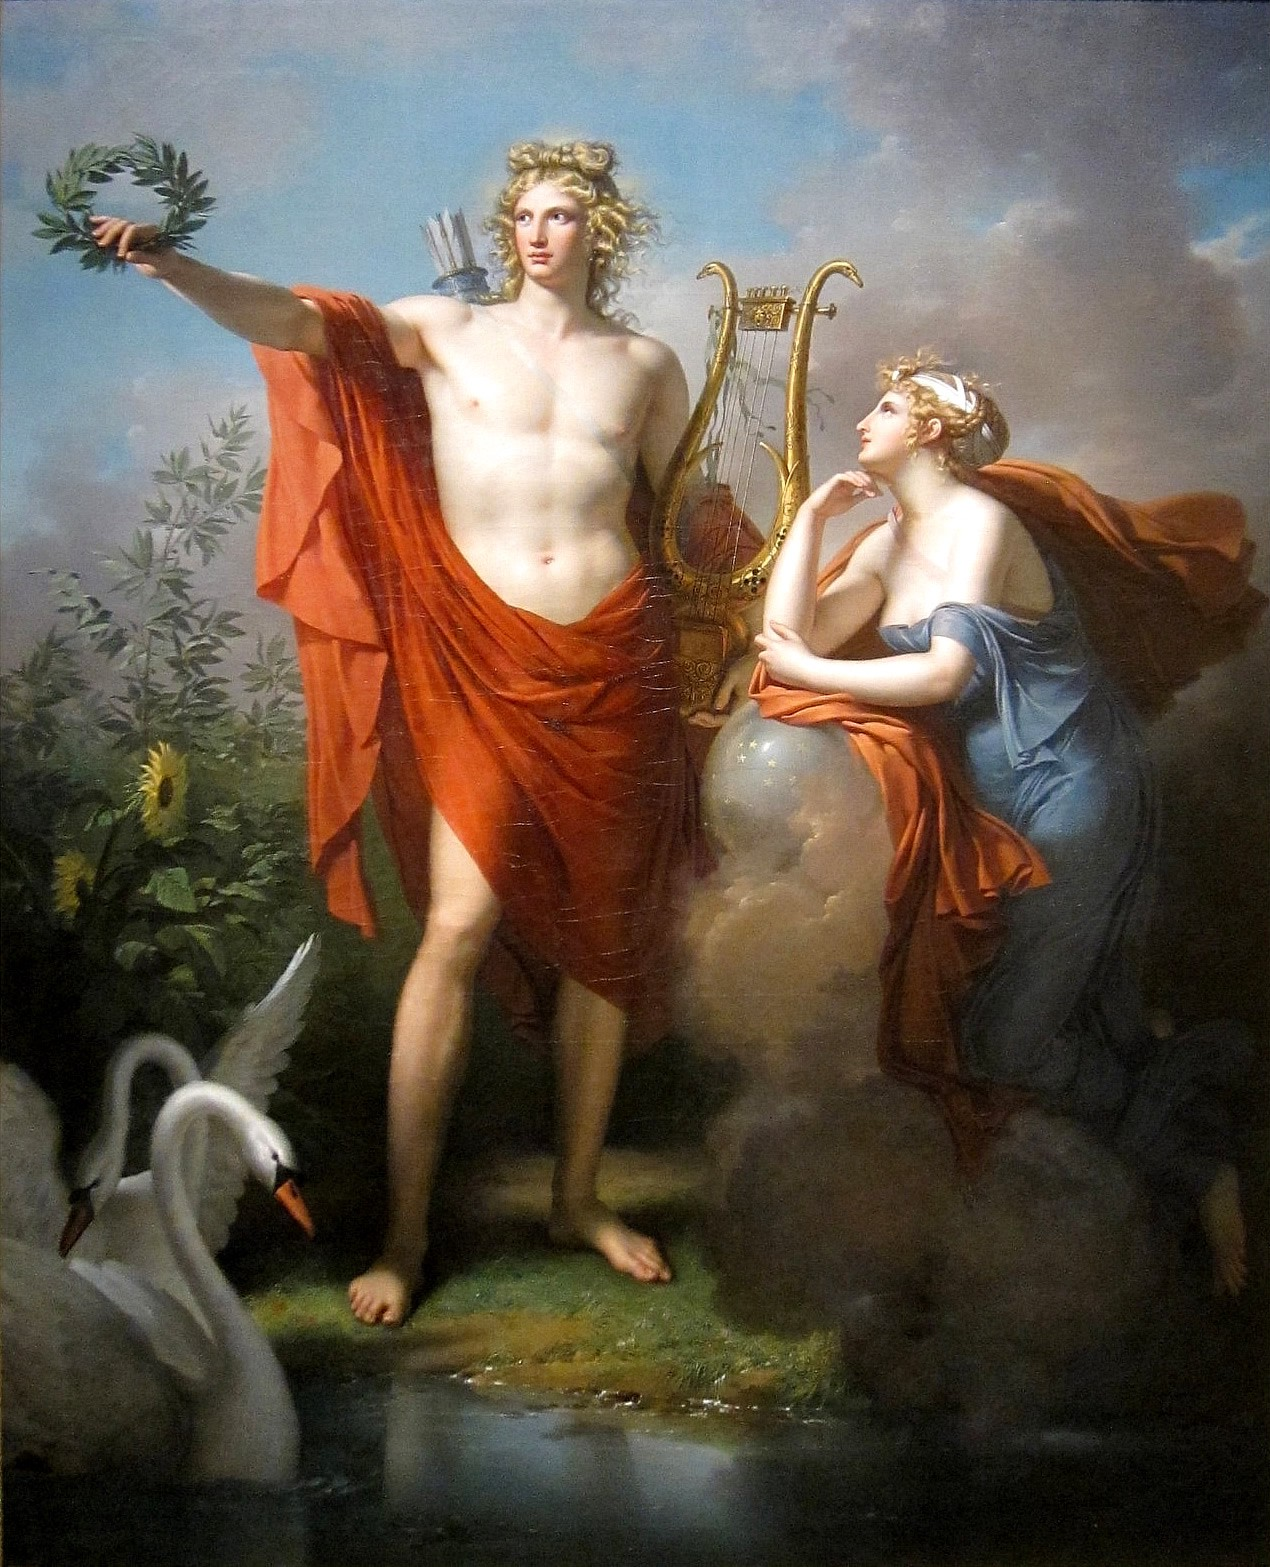 Ancient Greek Philosophy and its Engagements in Oedipus Rex